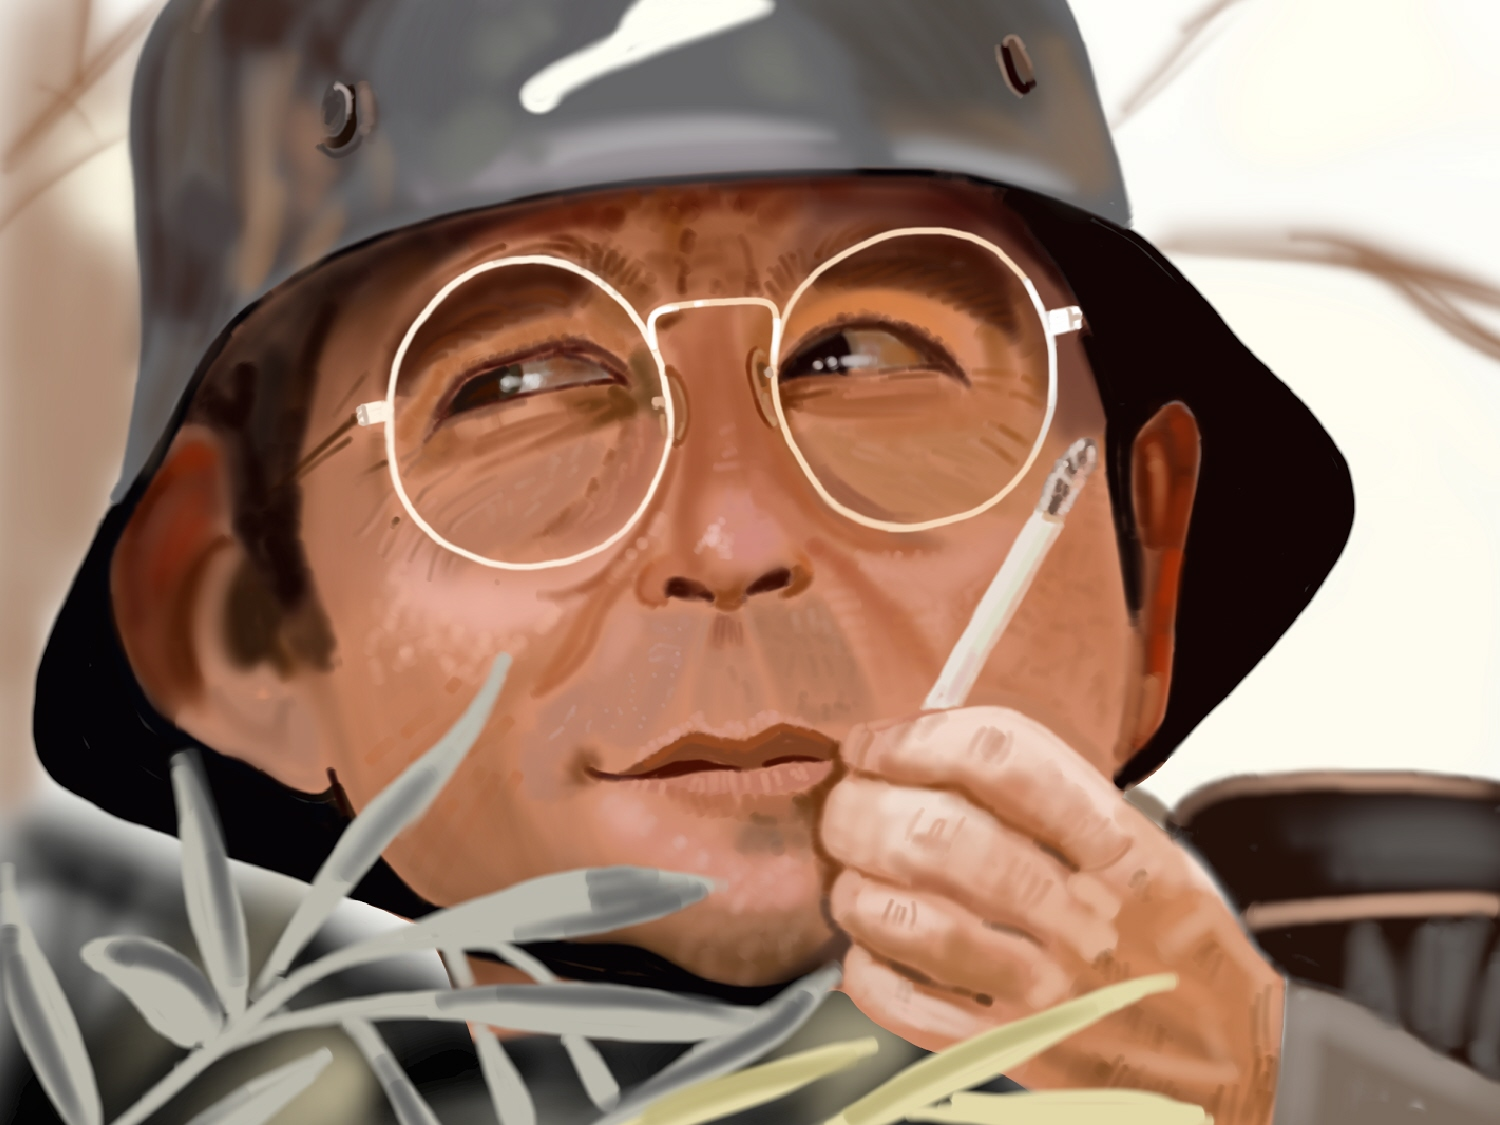 Arte Johnson Laugh In Gif Arte Johnson Alchetron The Free Social Encyclopedia